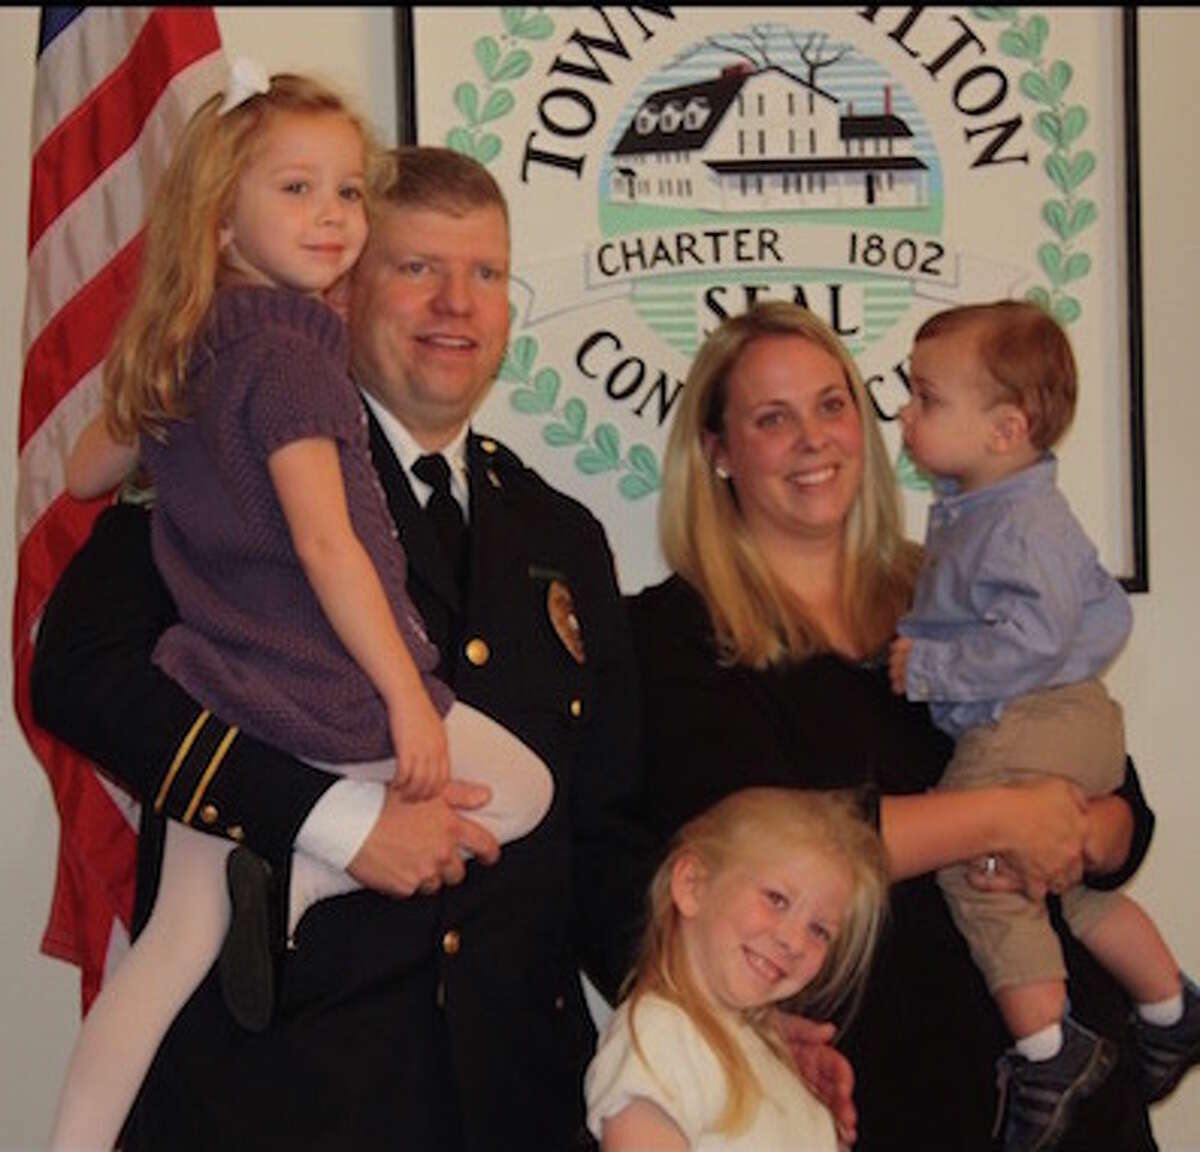 Capt. Thomas Conlan at his promotion in 2015 with wife Ashley, son Jake, and daughters Kaitlyn and Bryn. - Contributed photo